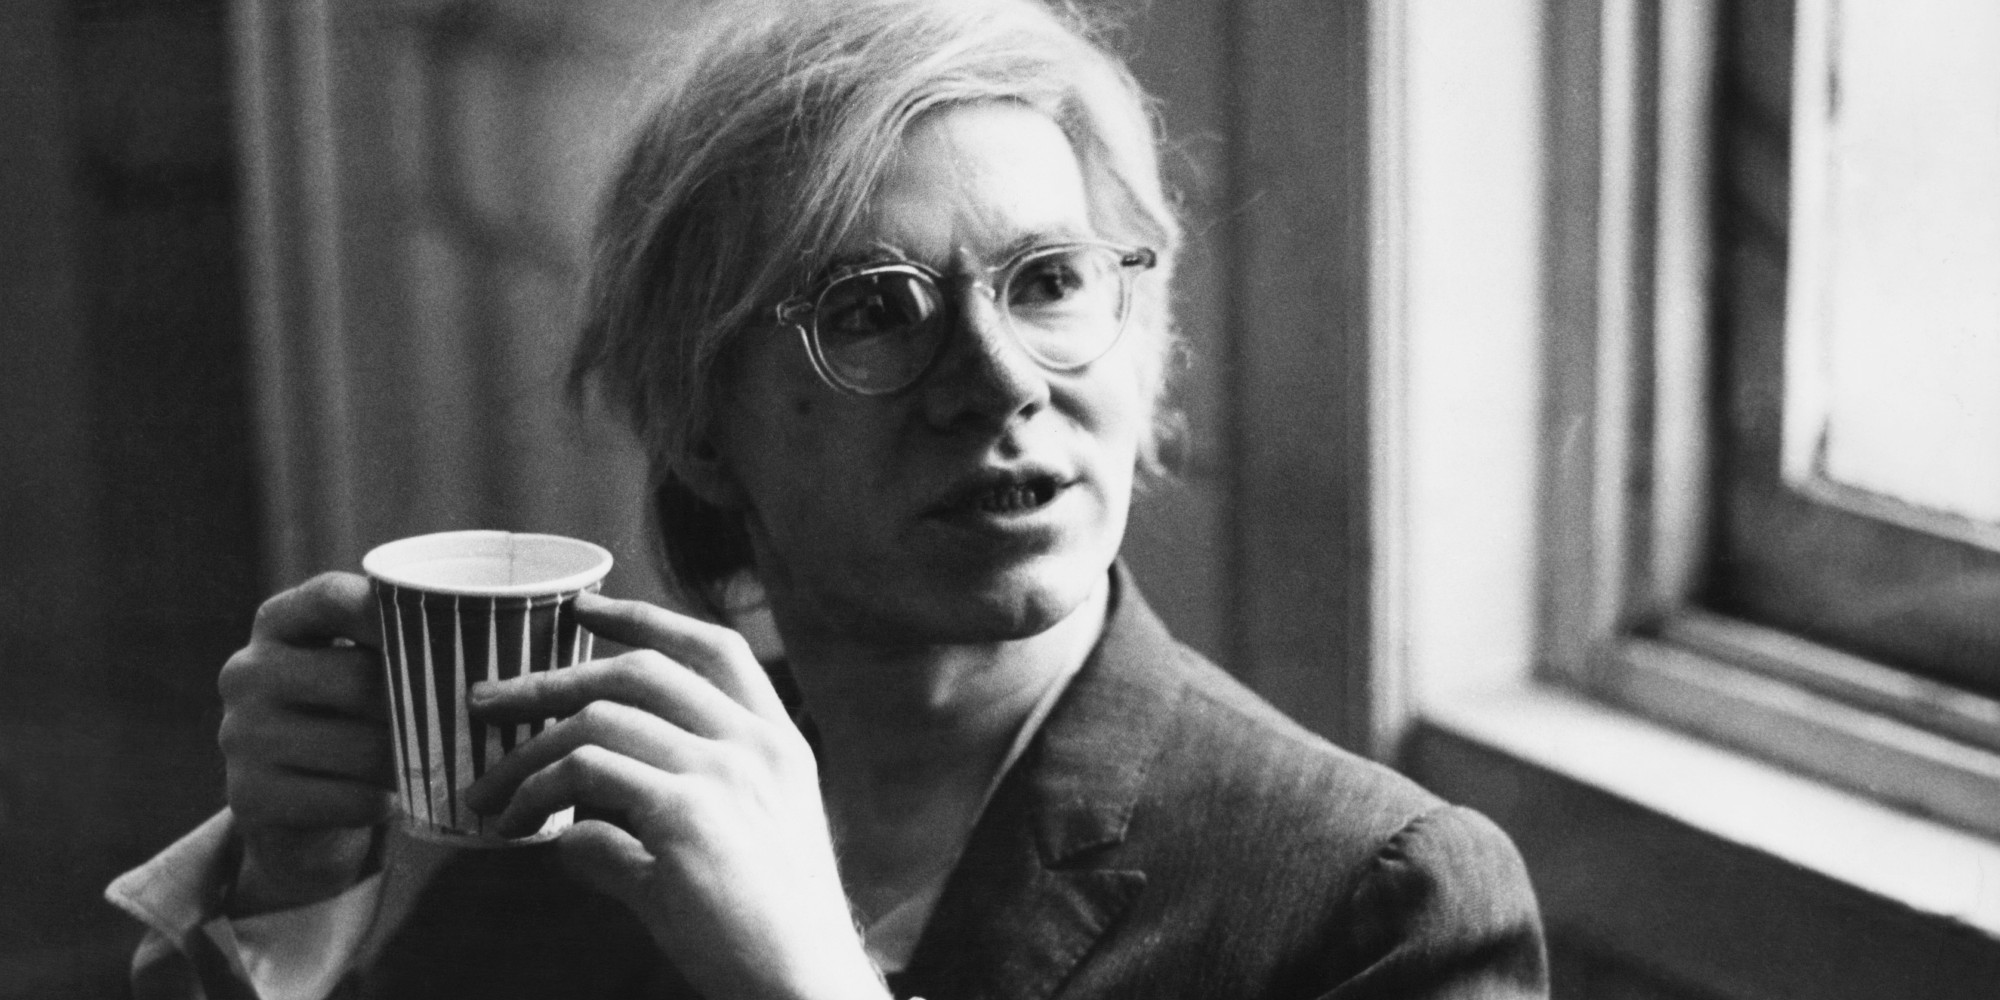 andy warhol 39 s family is trying to kickstart a documentary about its world famous uncle huffpost. Black Bedroom Furniture Sets. Home Design Ideas